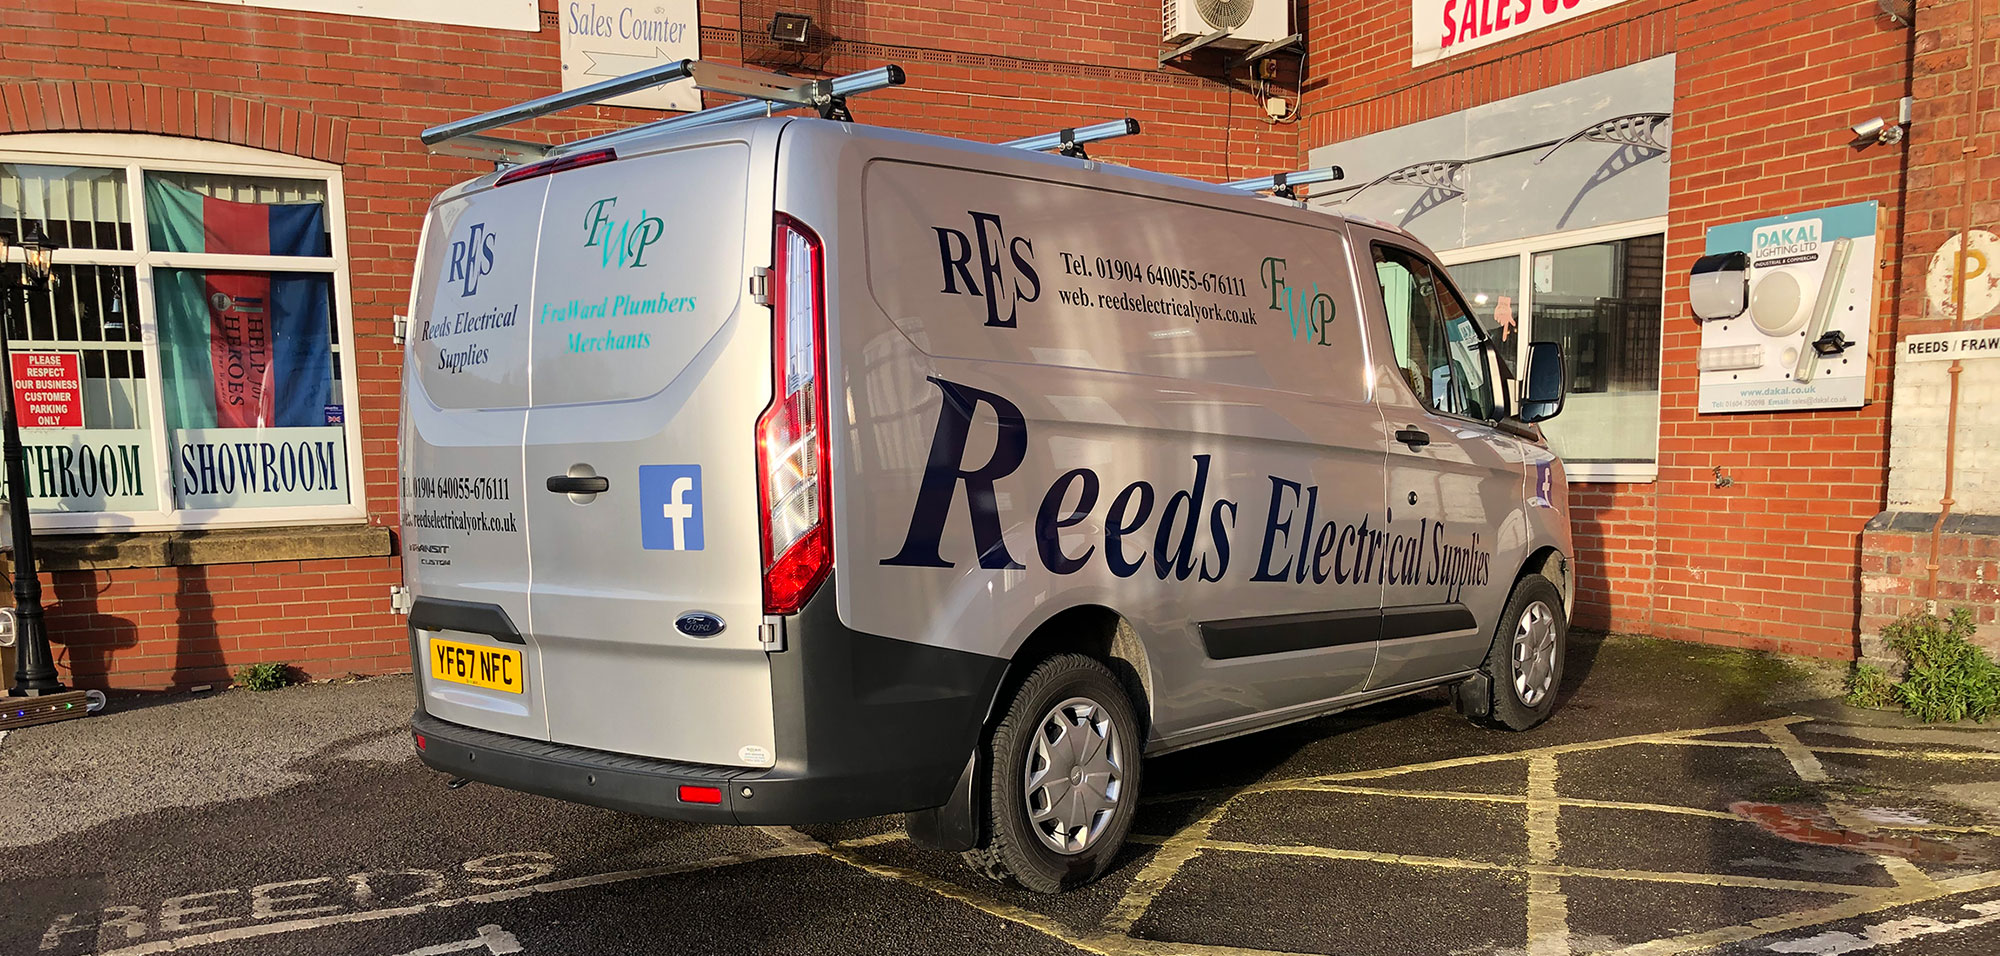 Reeds Electrical Supplies and FraWard Plumbing Merchants